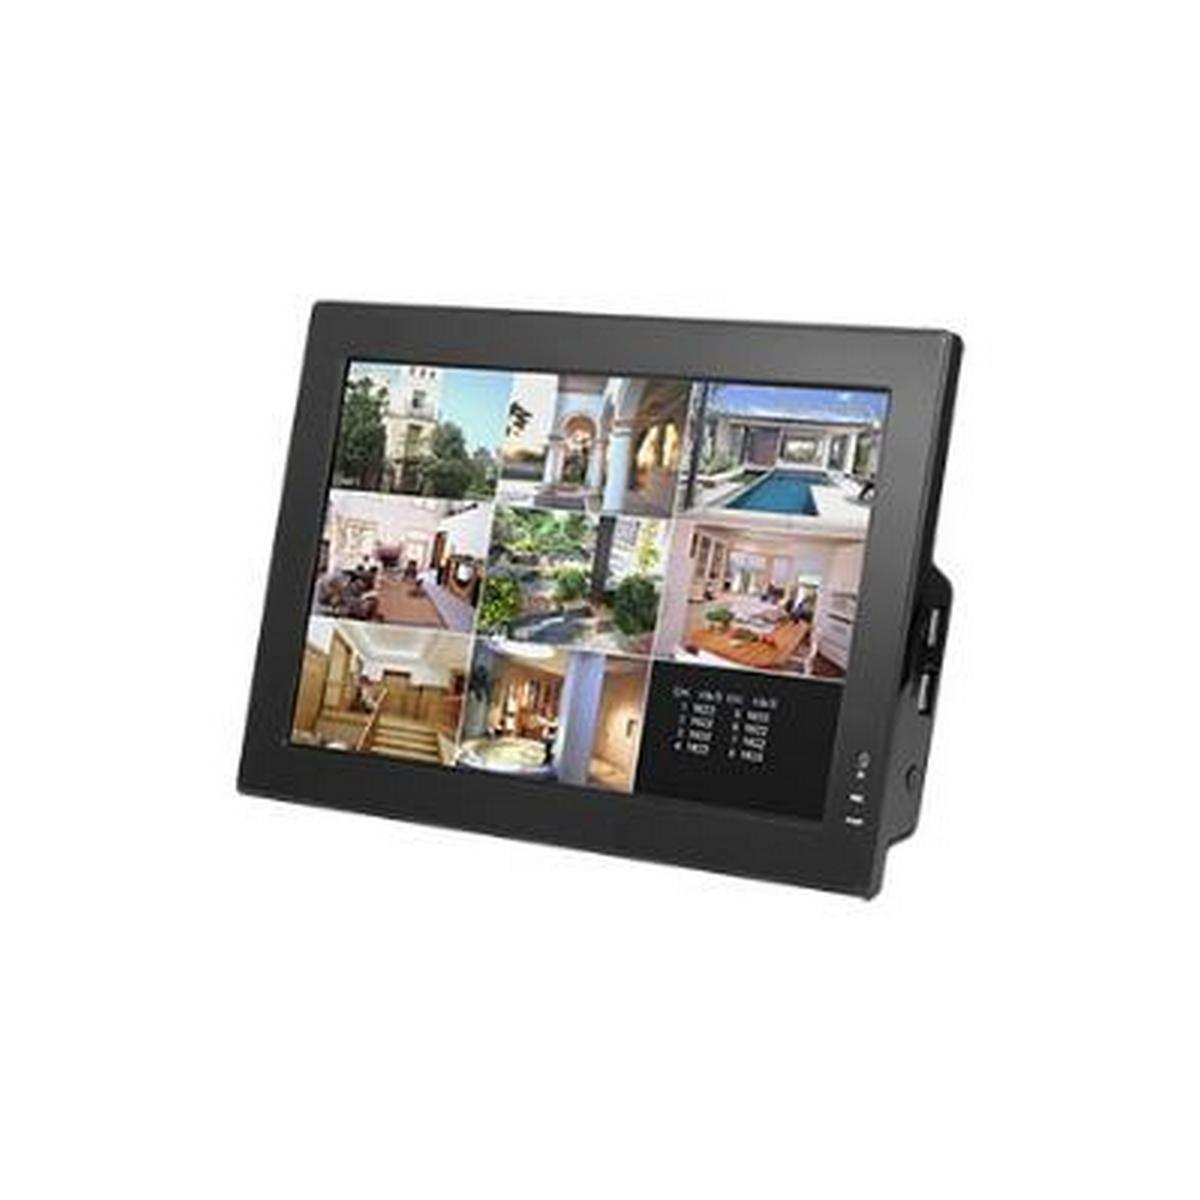 8 CHANNEL DVR - FEATURES A 250GB HARD DRIVE, 10 INCH ALL-IN-ONE LCD, 240/240 FPS AT CIF, UP TO D1 RESOLUTION WITH H.264E, PENTAPLEX OPERATION - NO DVD